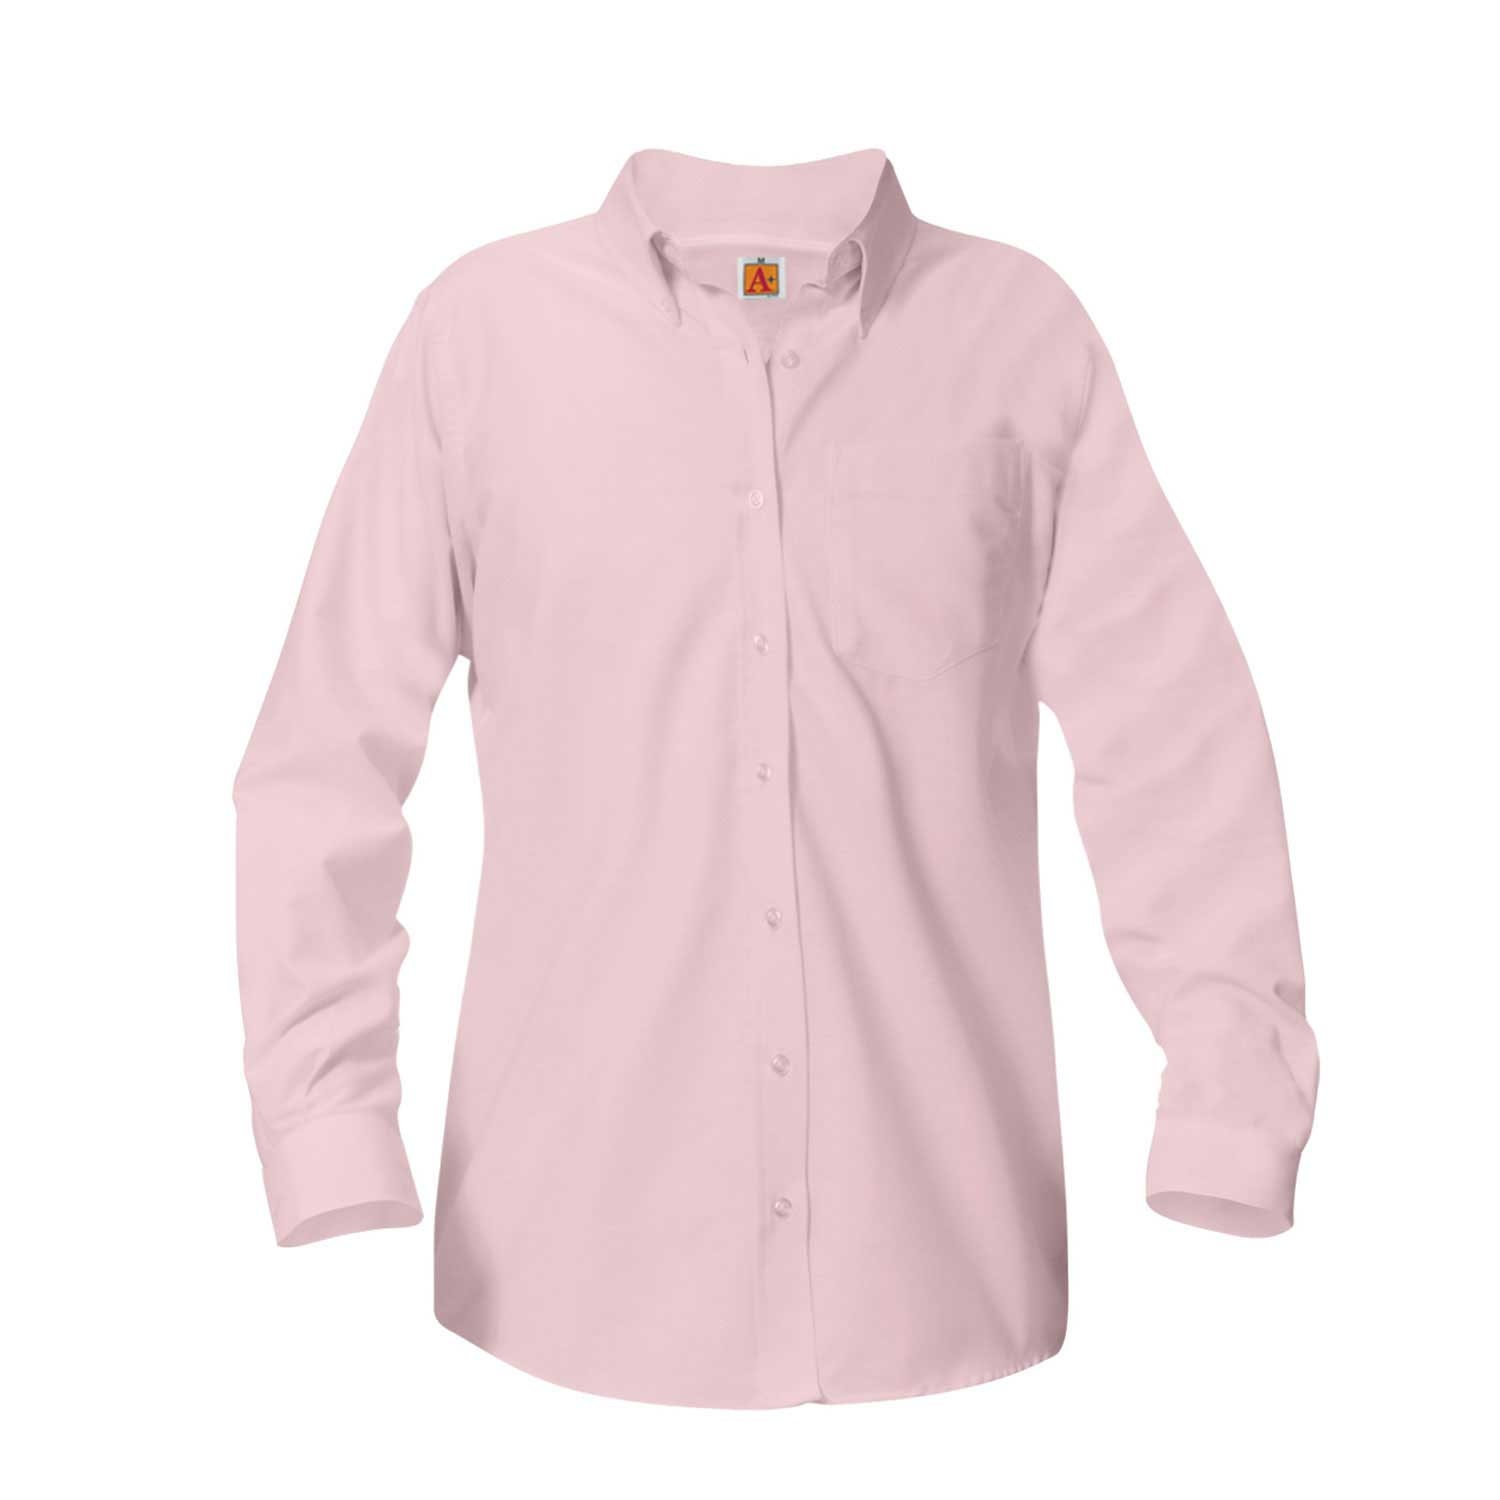 Blouses & Oxfords Options